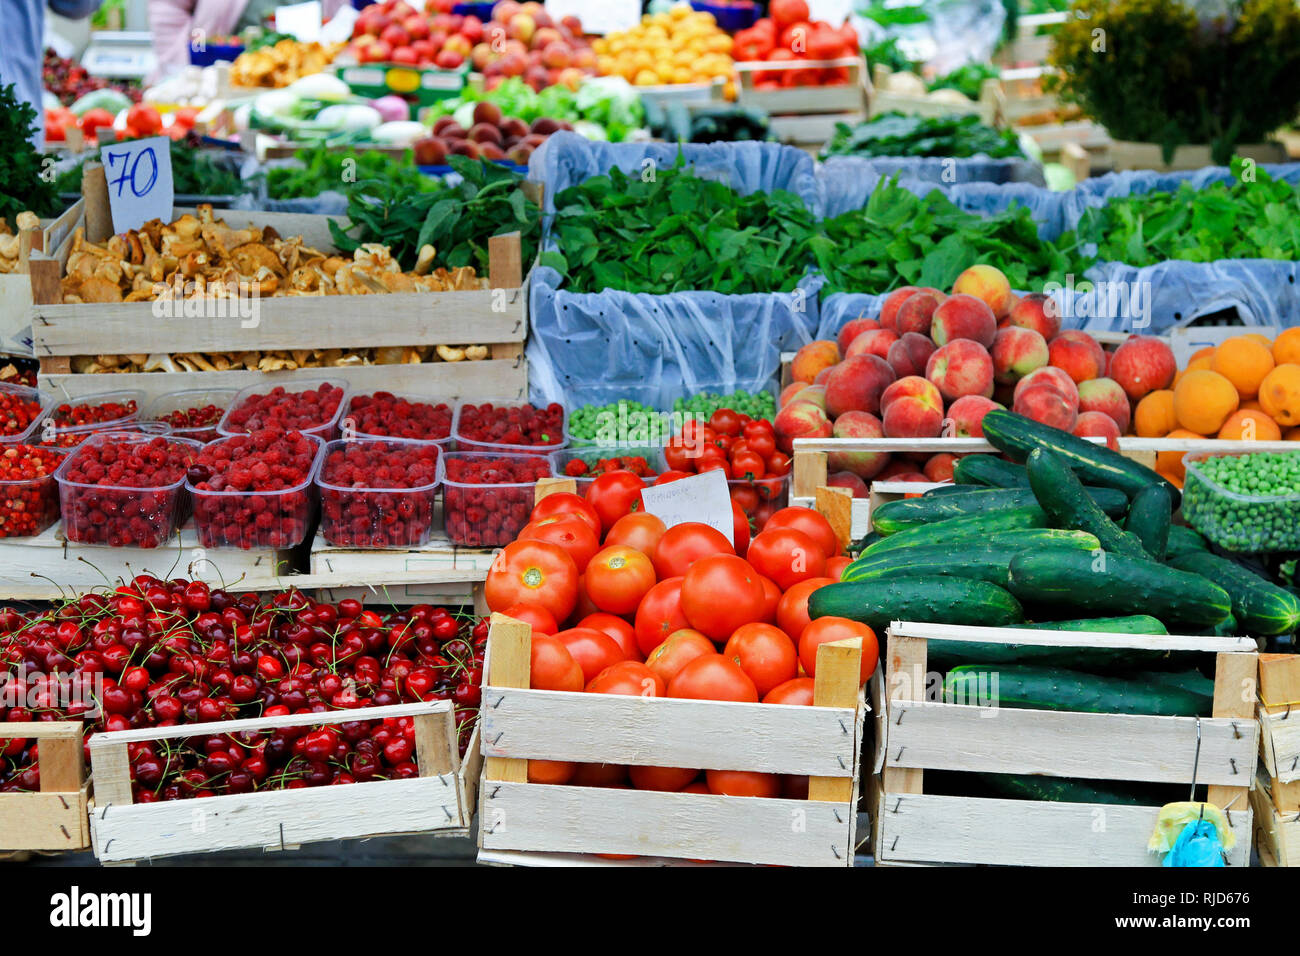 Fresh fruits and vegetables at farmers market - Stock Image